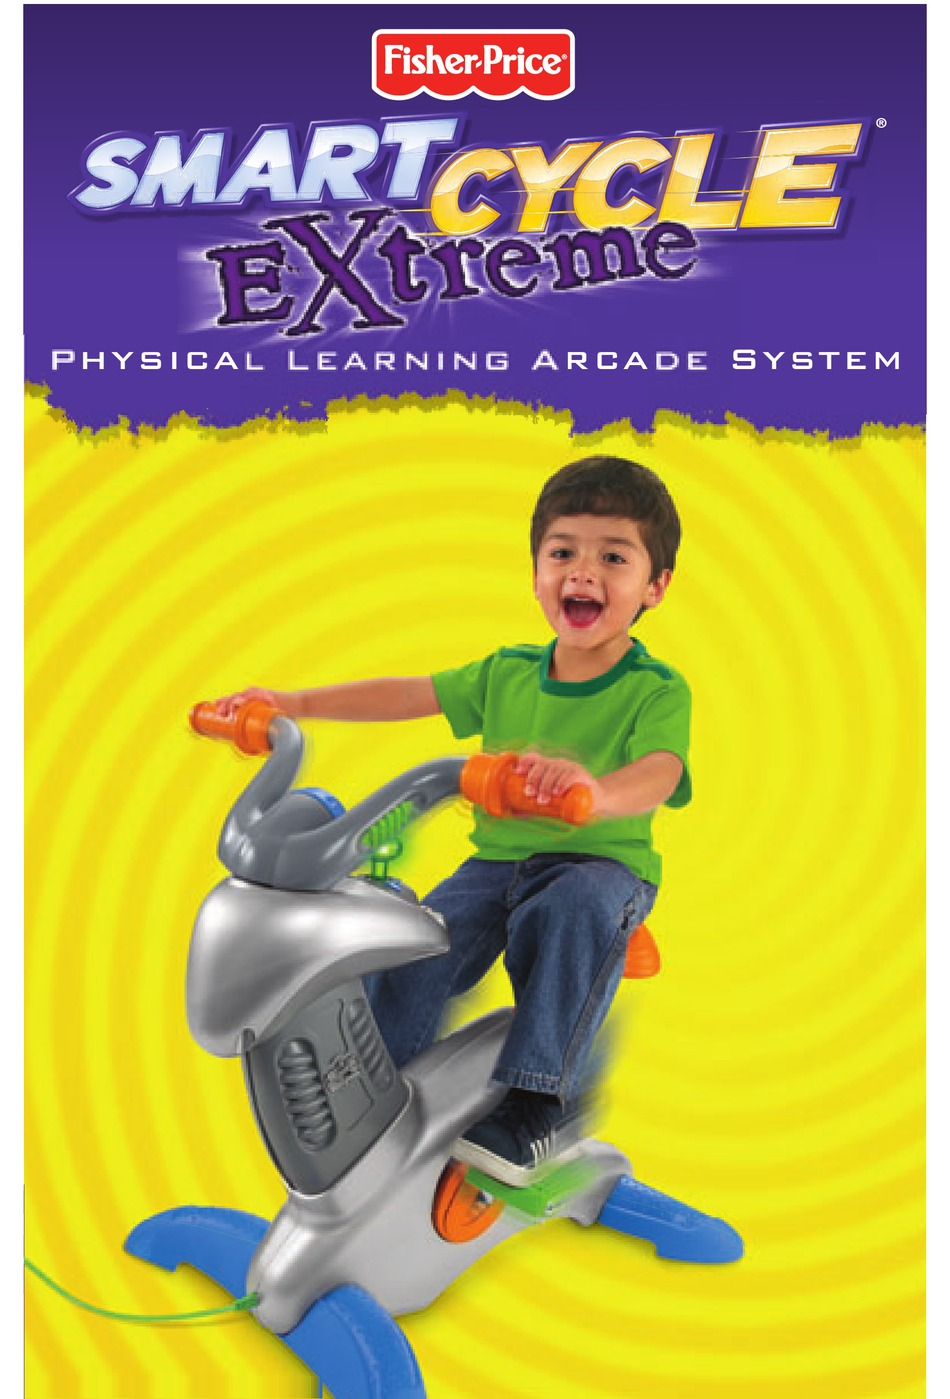 Fisher Price Smart Cycle Extreme Instructions Manual Pdf Download Manualslib